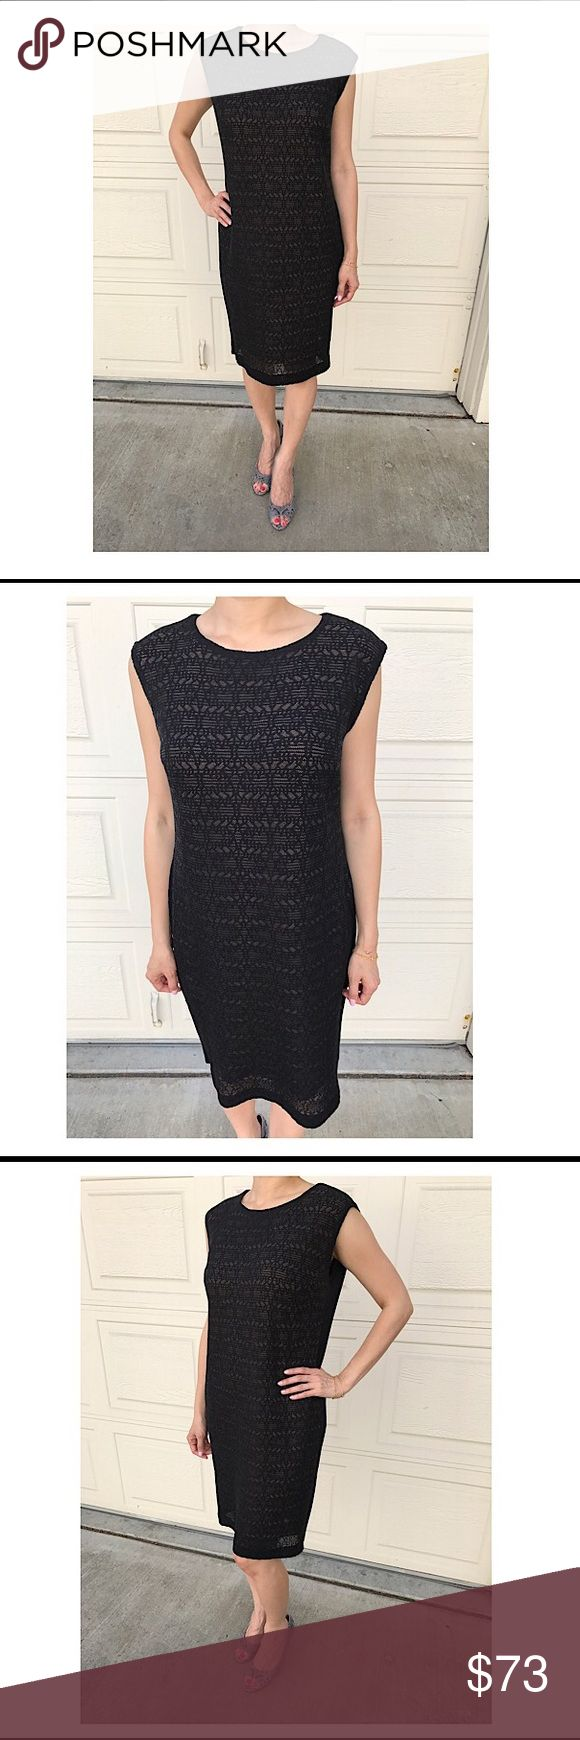 MISOOK Niemen Marcus 👚lace shell black dress LBD MISOOK (Niemen Marcus brand) black lace shell pattern on front with nude lining and plain black back. Made in Korea. Pull on style, no zippers, loose fit, marked size S, but feels like M. Small snag near the knee area as shown in last photo, not noticeable. COLE HAAN snakeskin pumps and FENDI B bag are for sale too in my closet. Open to reasonable offers or bundle 2 for 15% off! Misook Dresses Midi